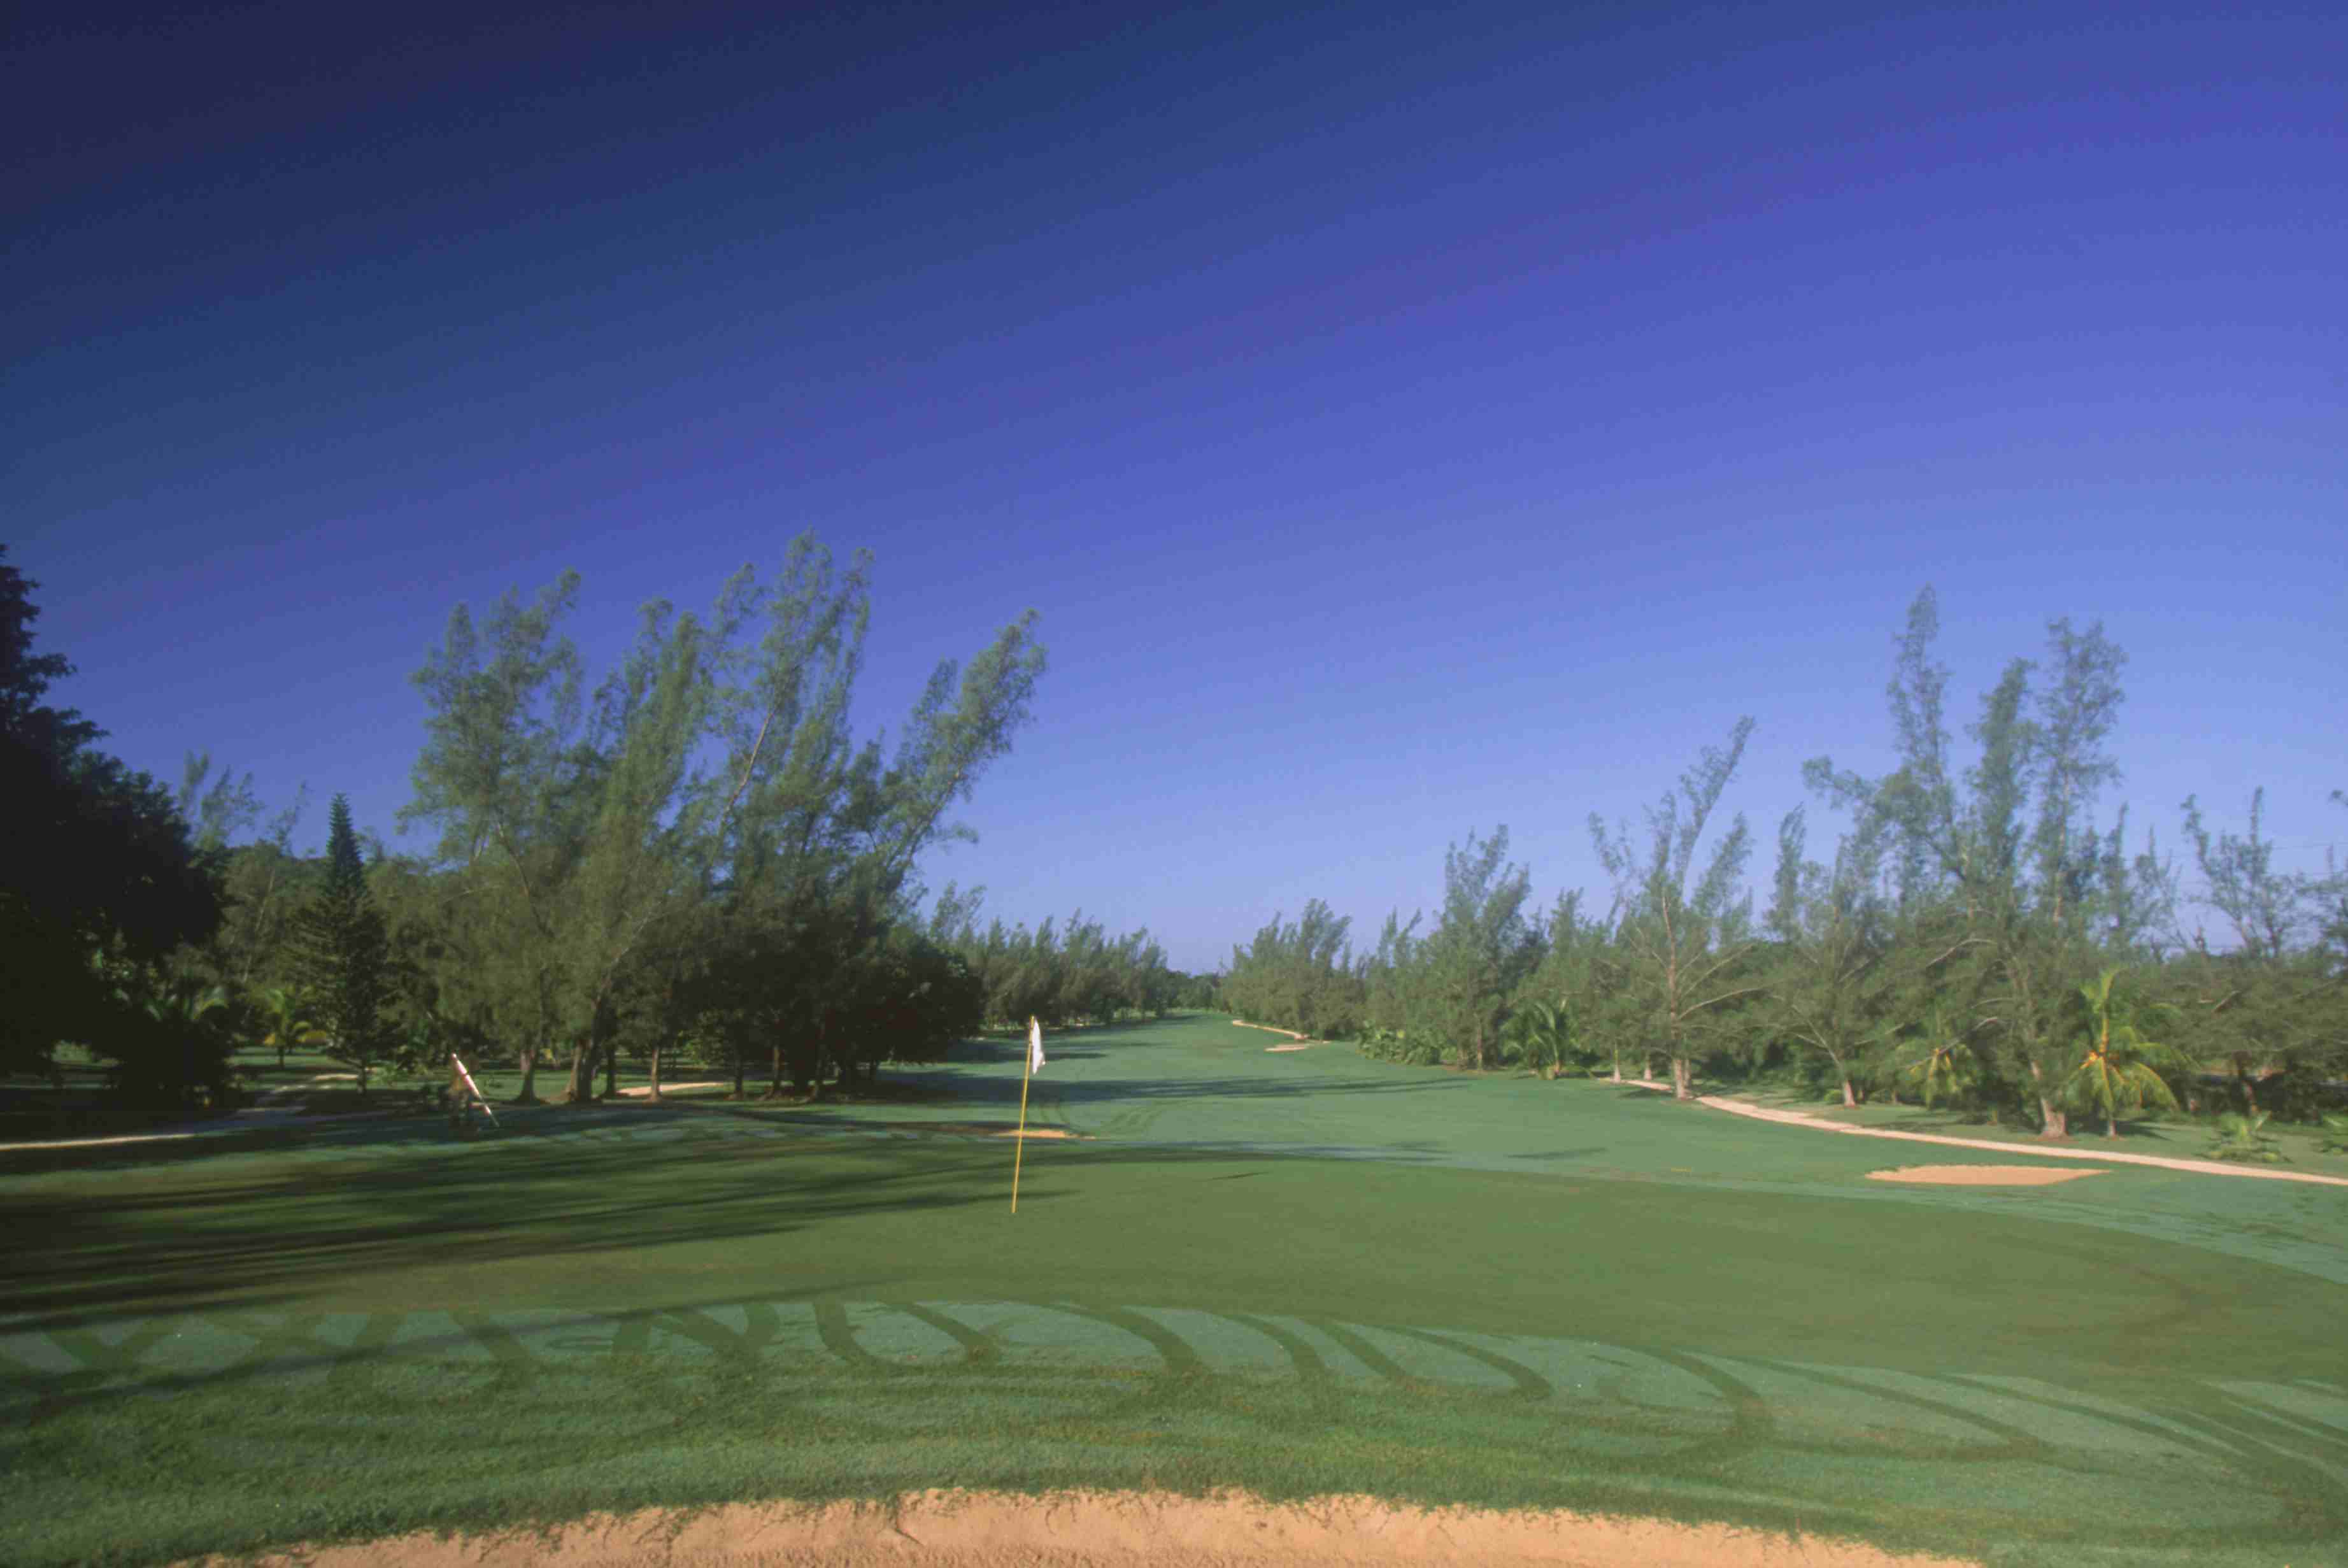 General view of the Half Moon Golf Club,Montego Bay,Jamaica.